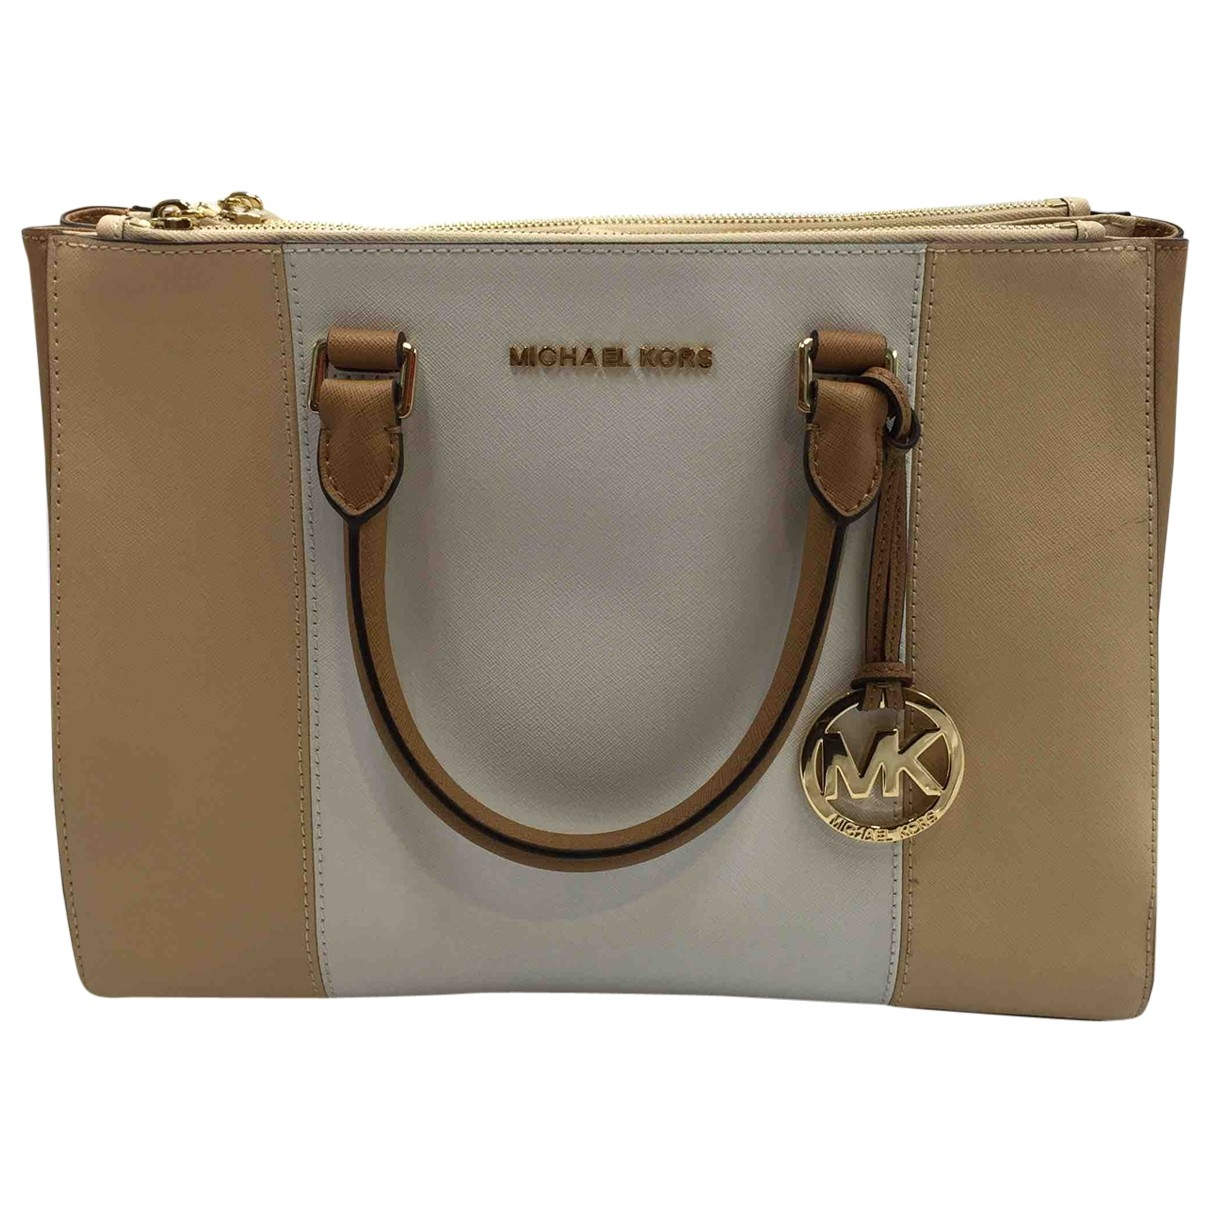 Michael Kors Sutton  Multicolour Leather handbag for Women \N